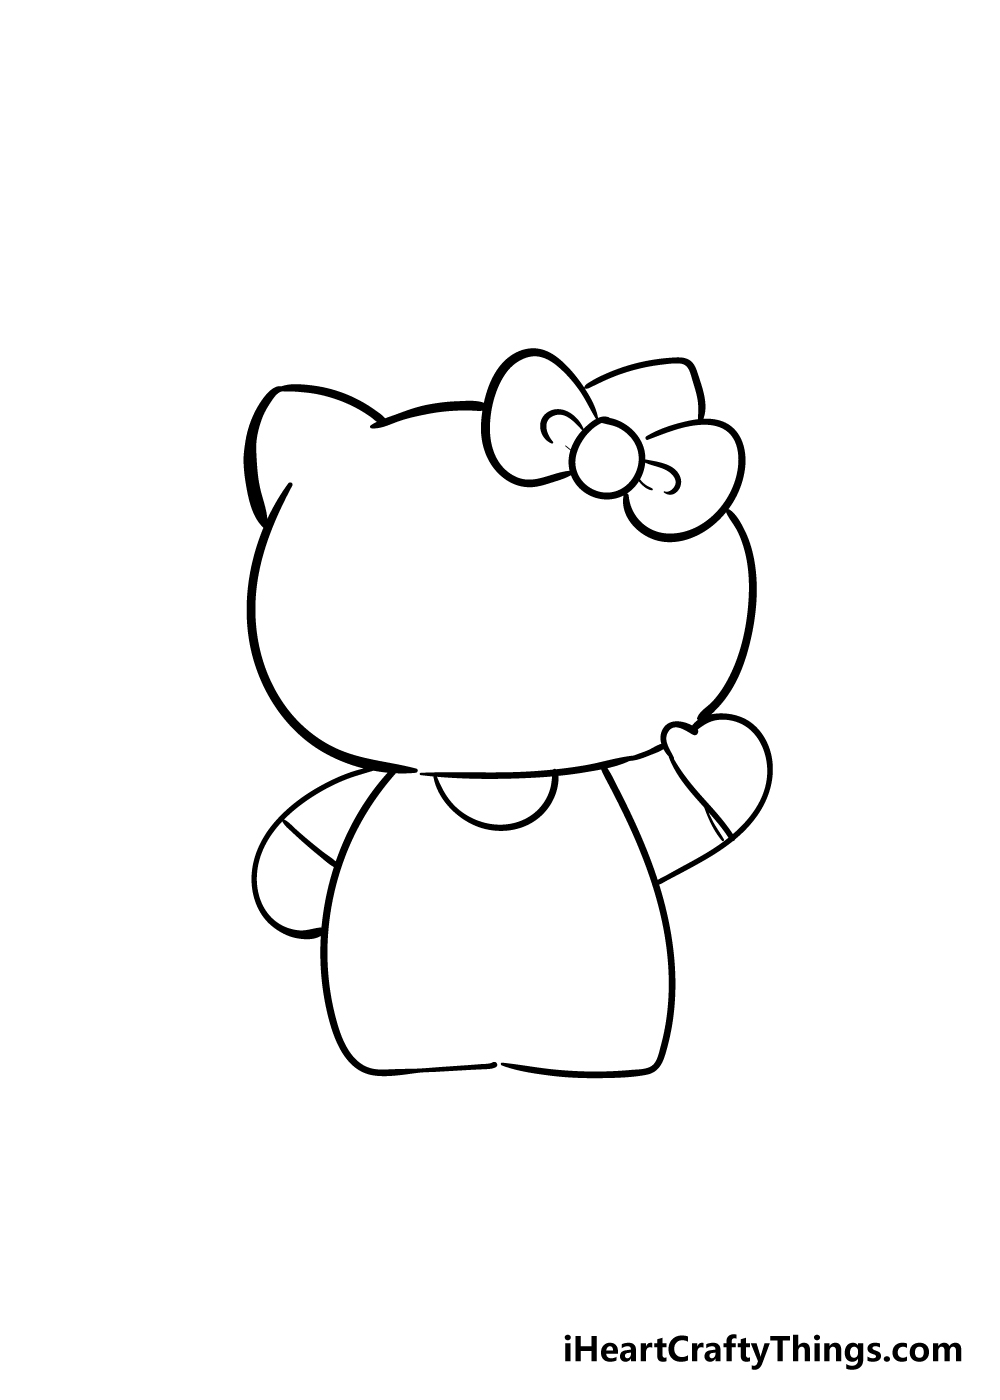 hello kitty drawing step 3